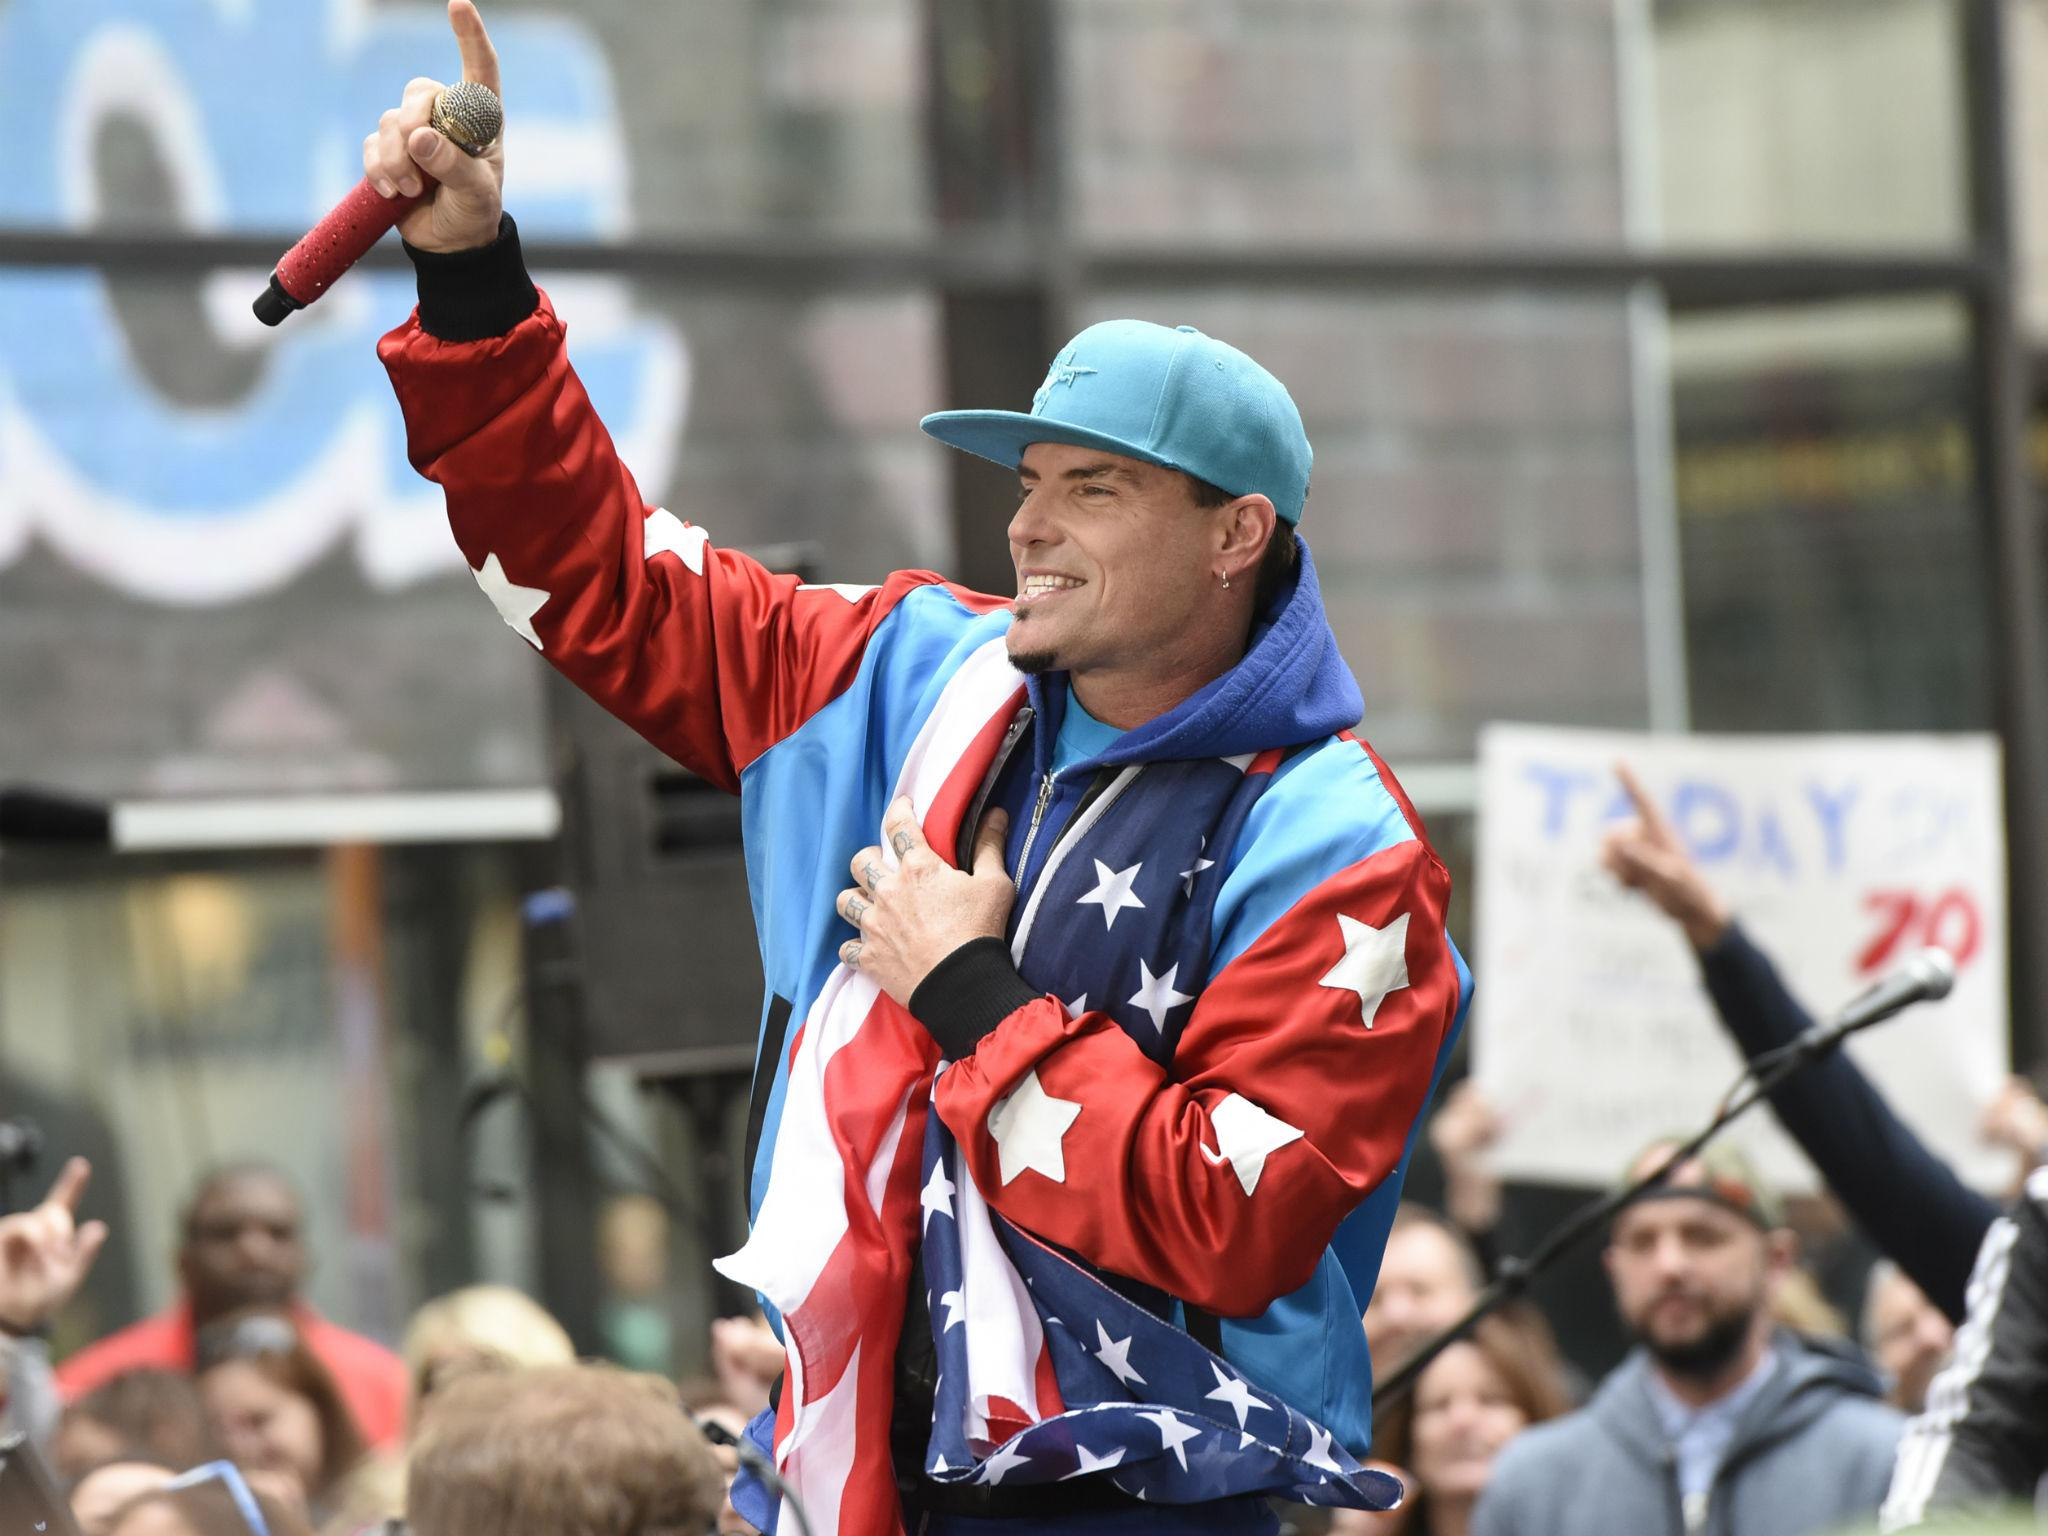 Hurricane Matthew: Vanilla Ice prompts panic for going silent after ...